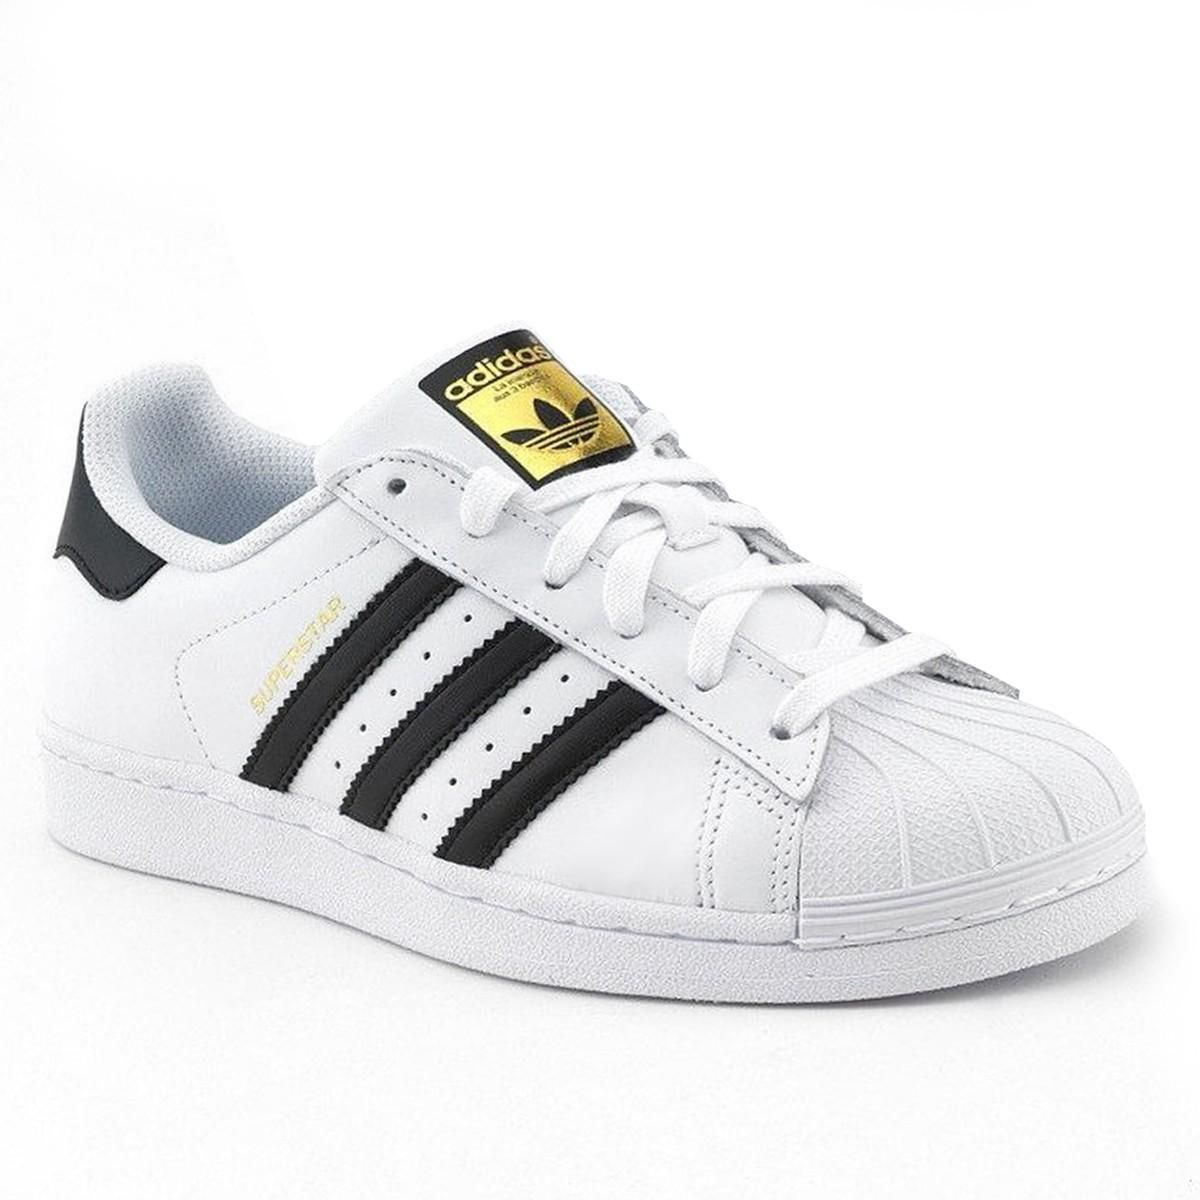 ADIDAS Superstar OG chaussures blanches bandes noires in ...